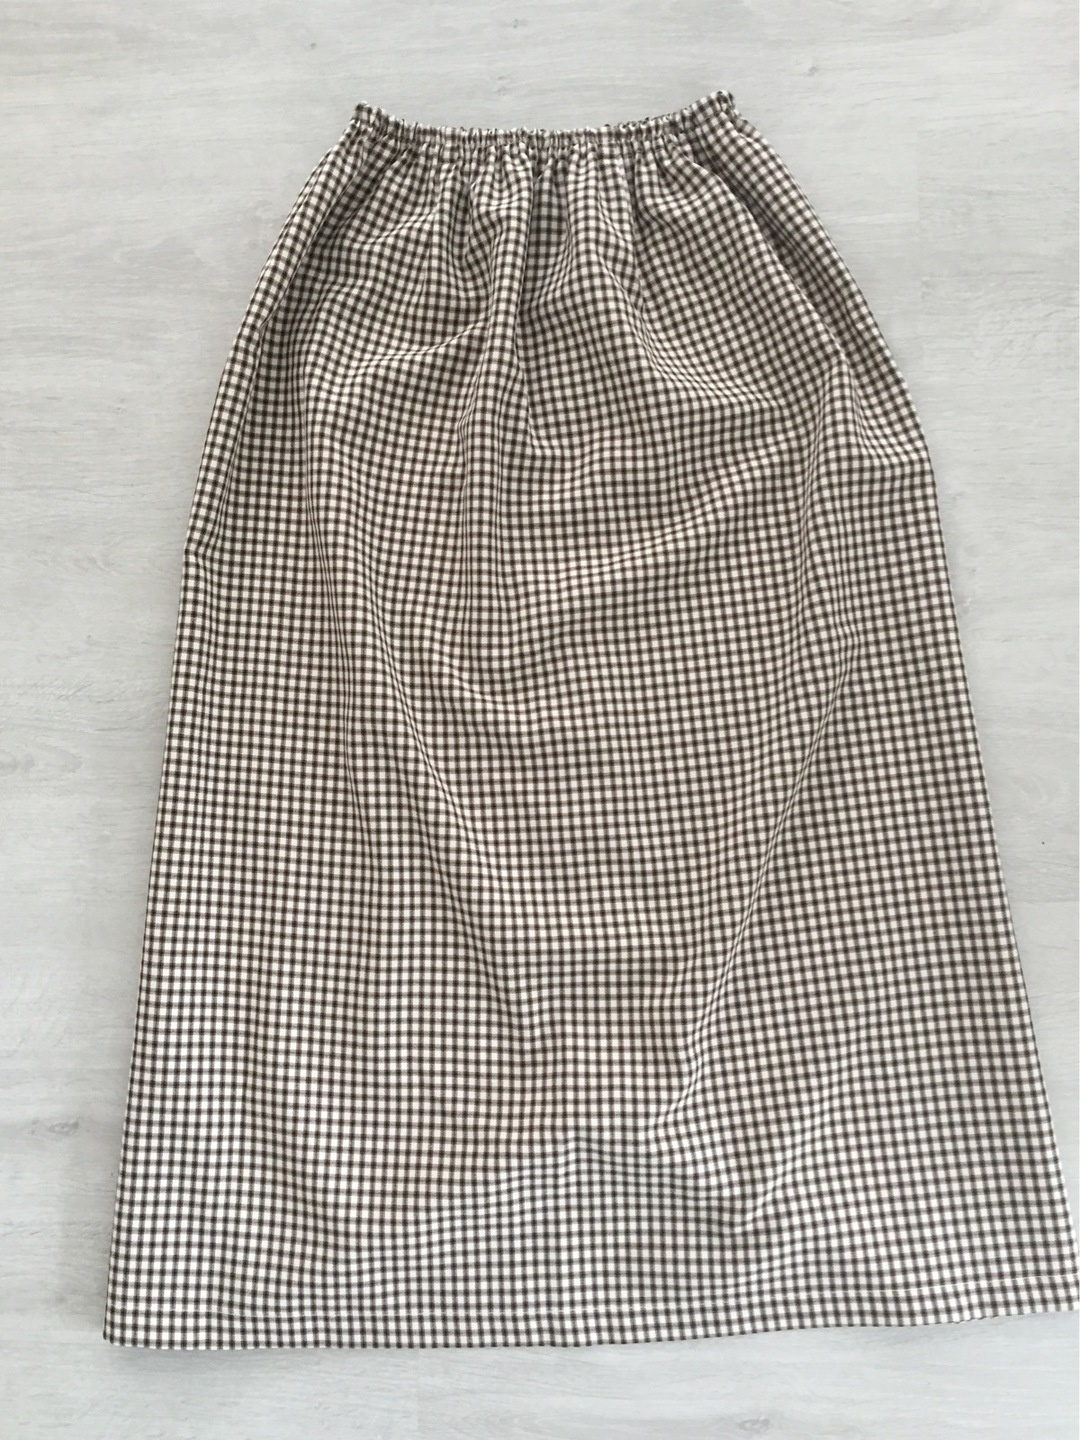 Women's skirts - VINTAGE photo 2